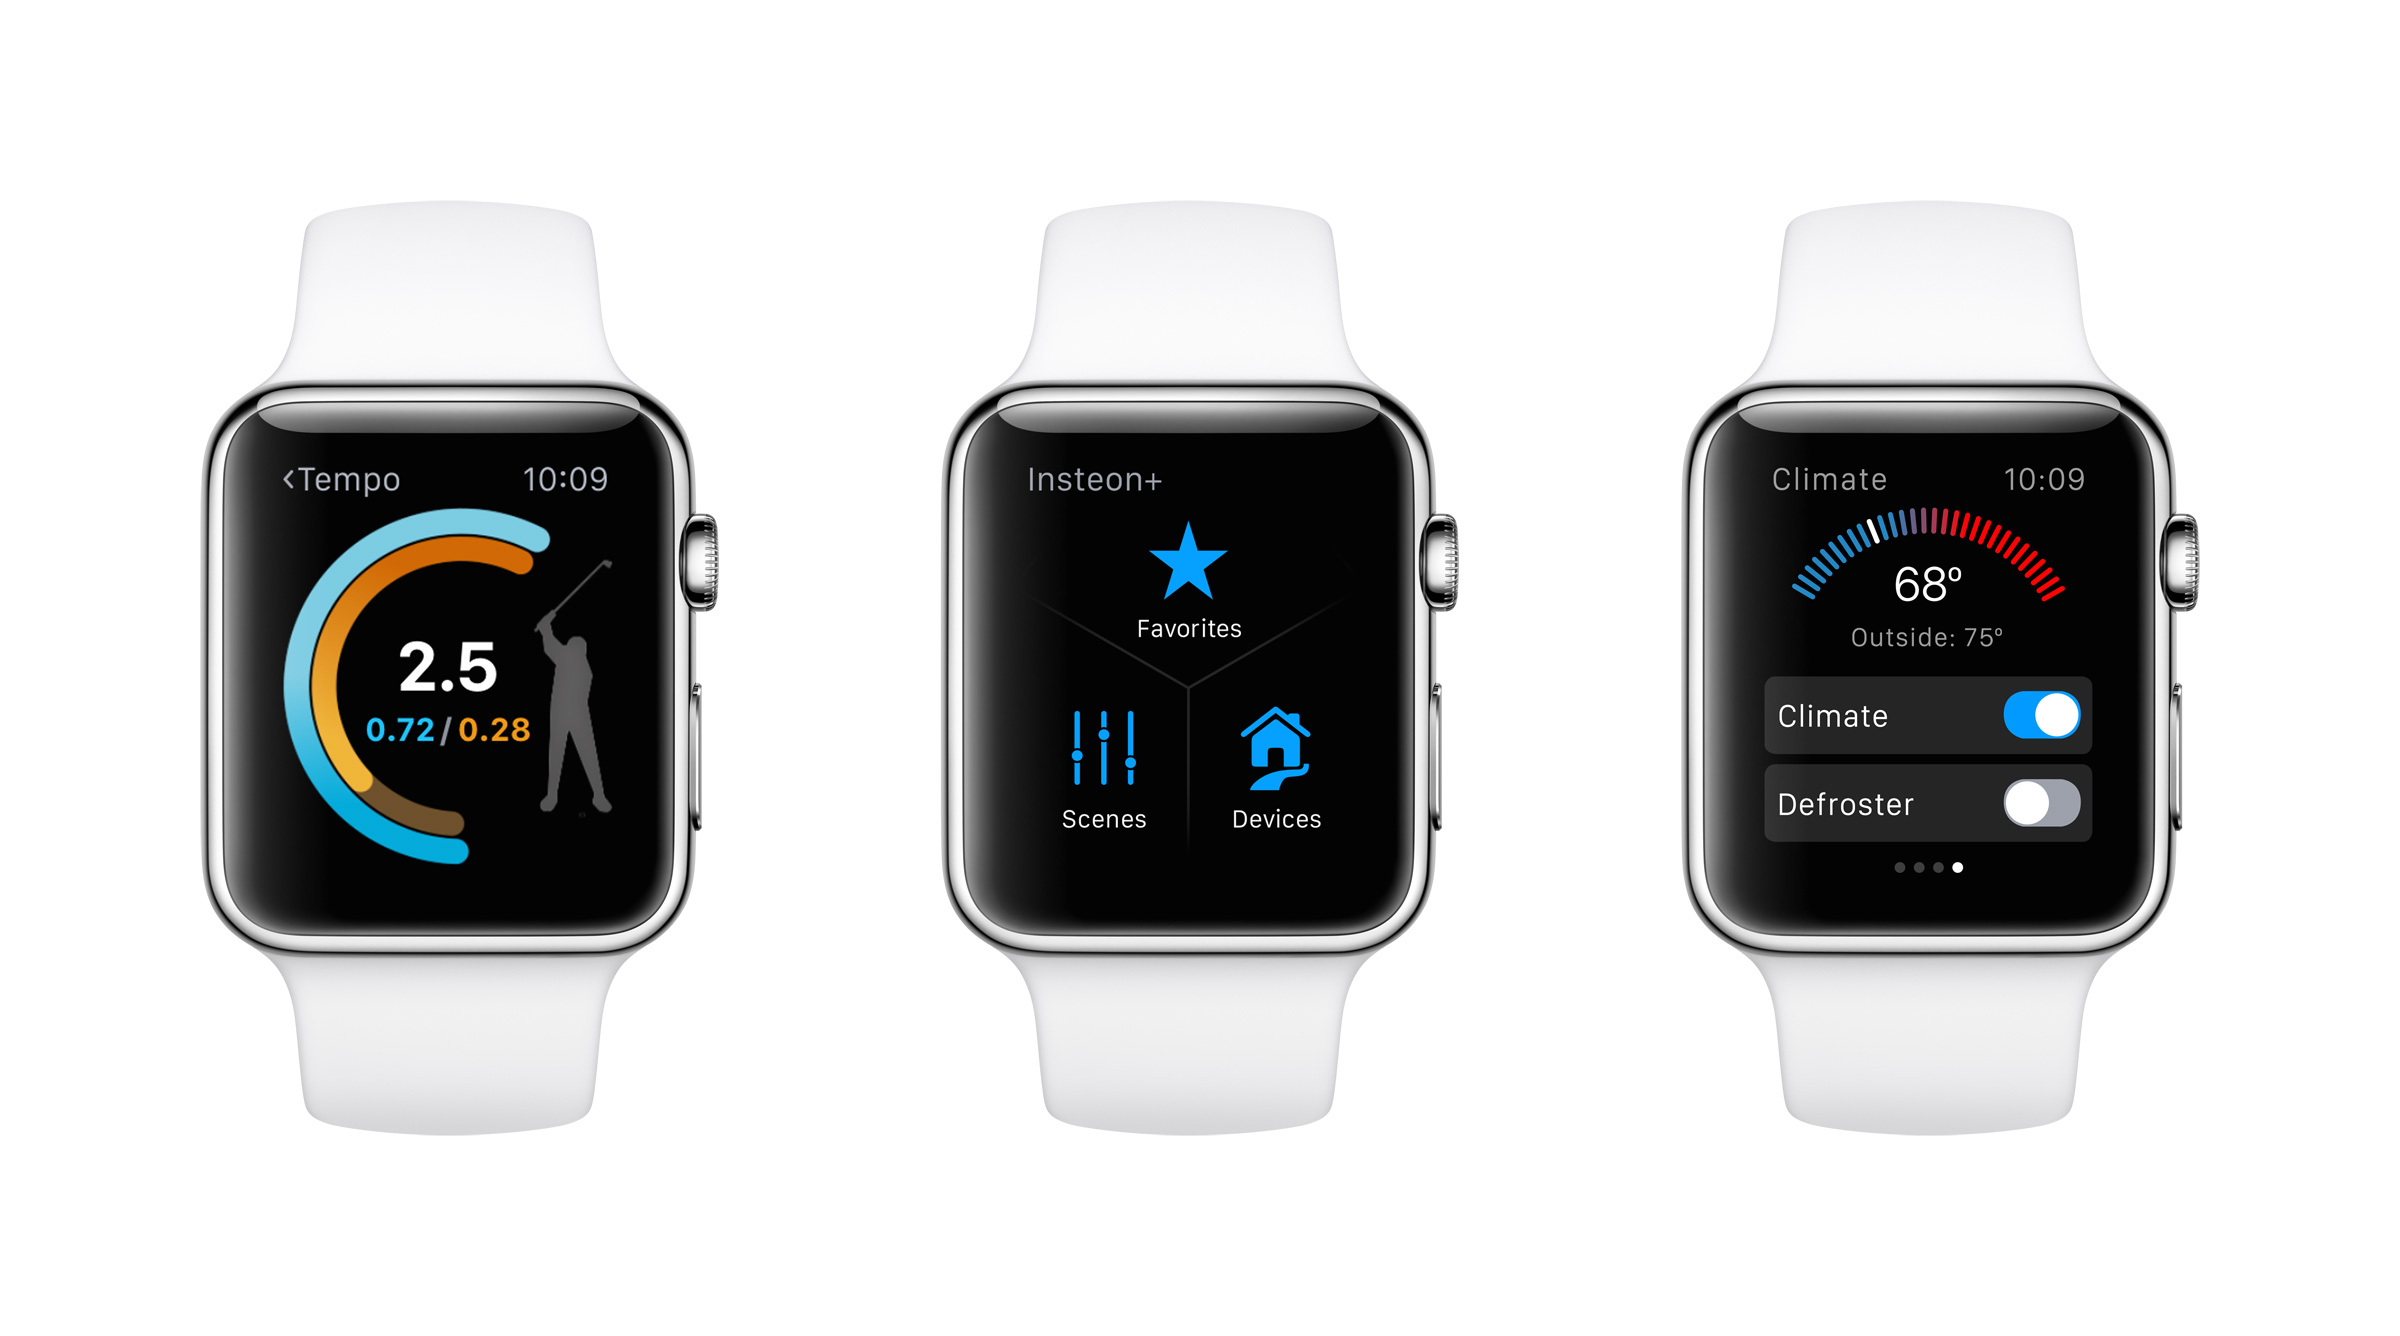 Watch-3Up-WatchOS2-3rdParty-PR-SCREEN